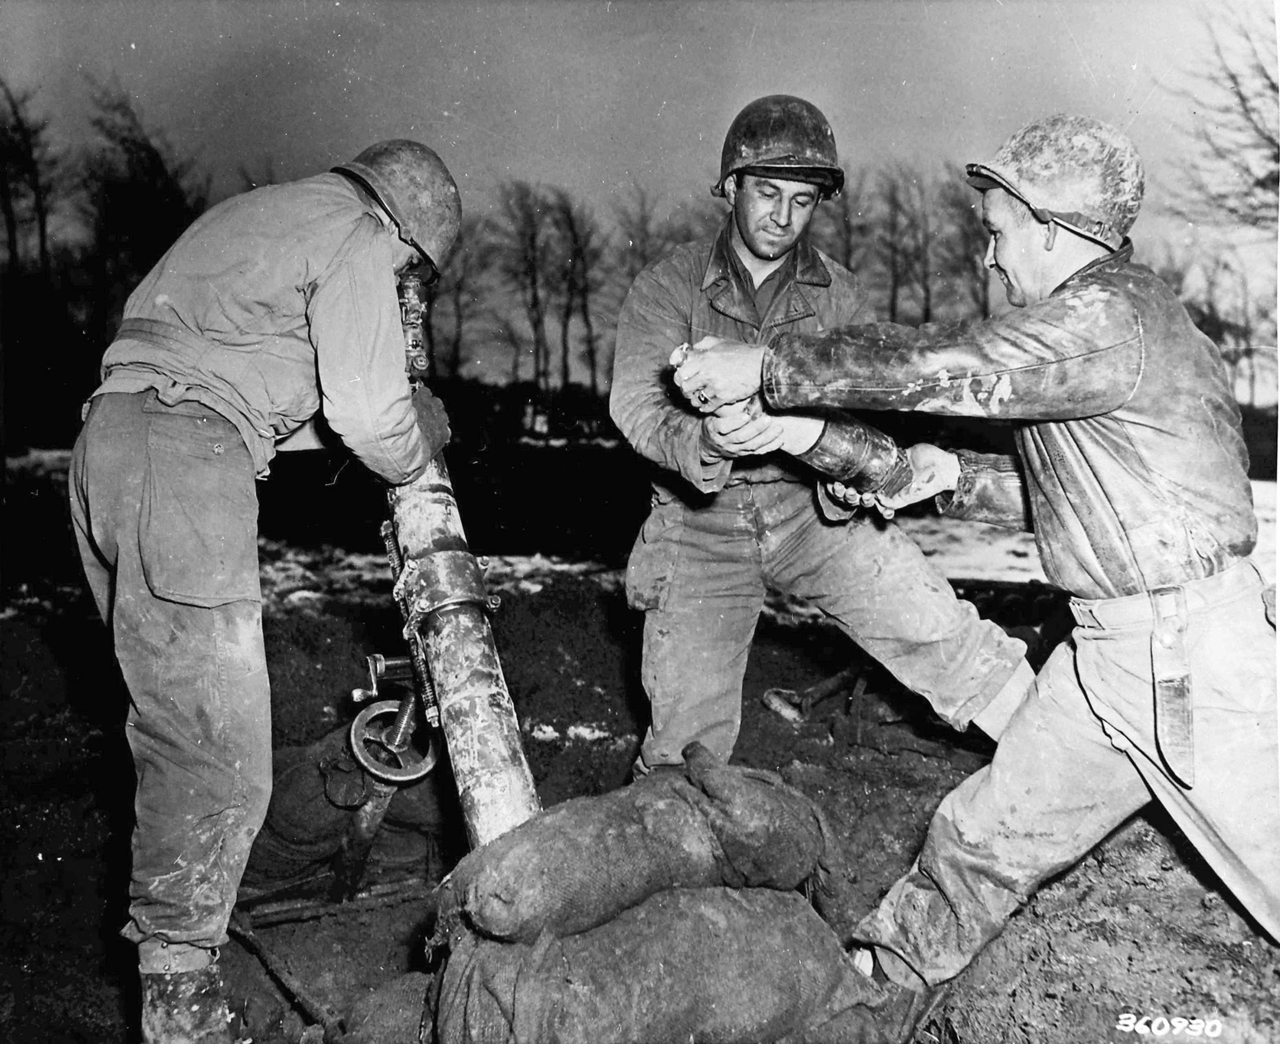 Dec 1944, 8Th American Infantry Division, 86Th Chemical Mortar Battalion